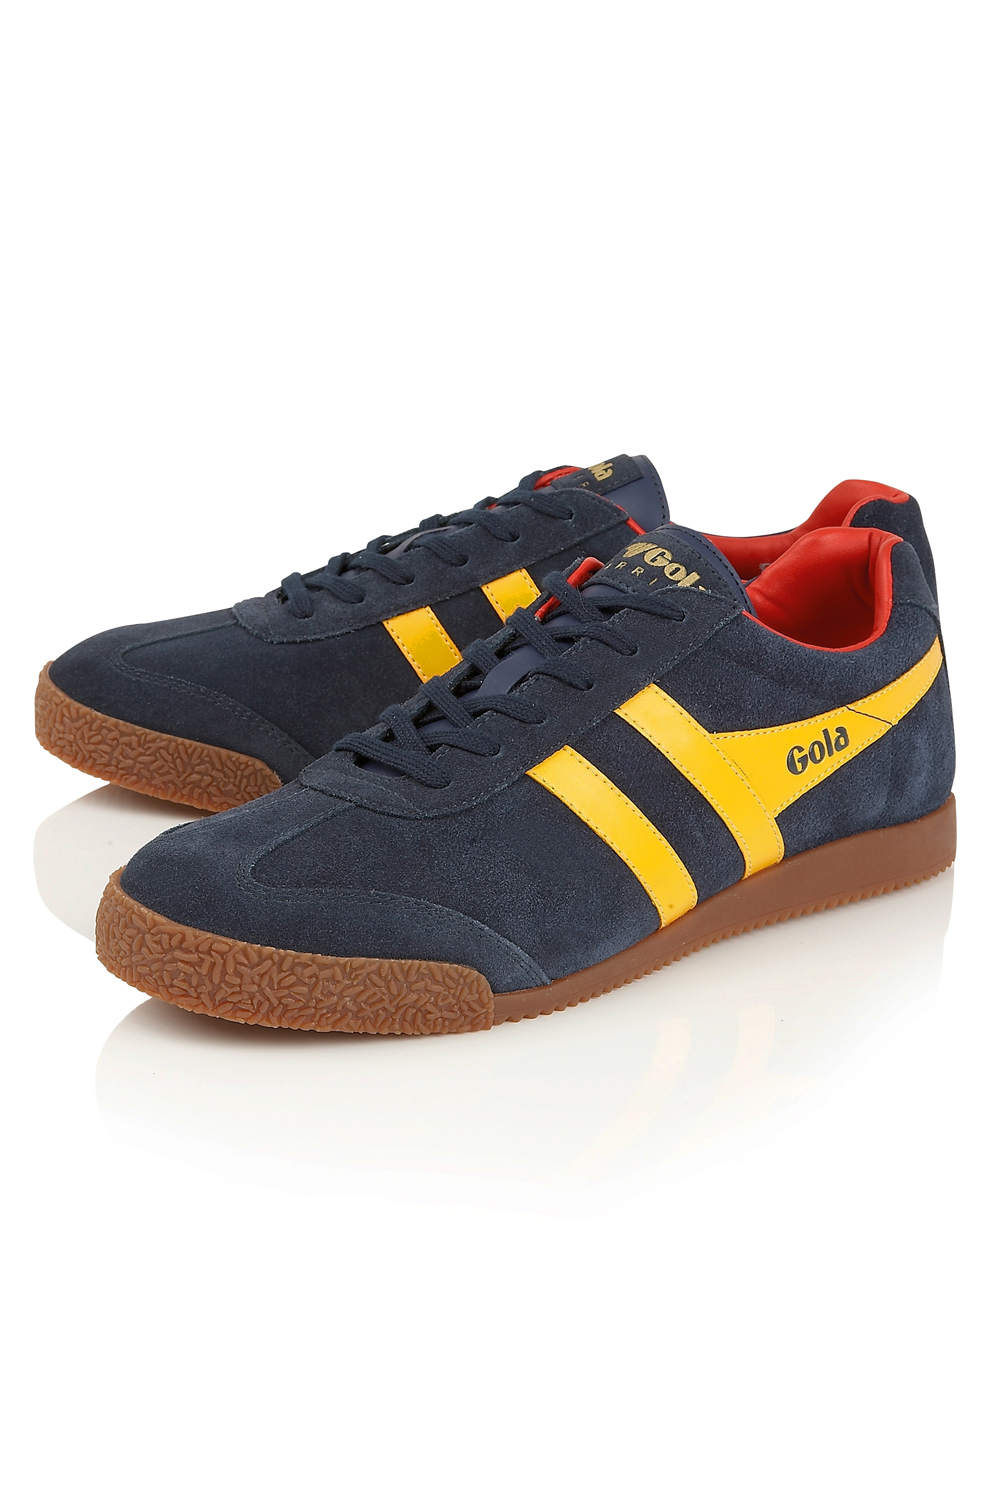 thumbnail 13 - Gola Harrier Suede Classic Vintage Lace-Up Sneakers Mens Trainers Low Top Shoes